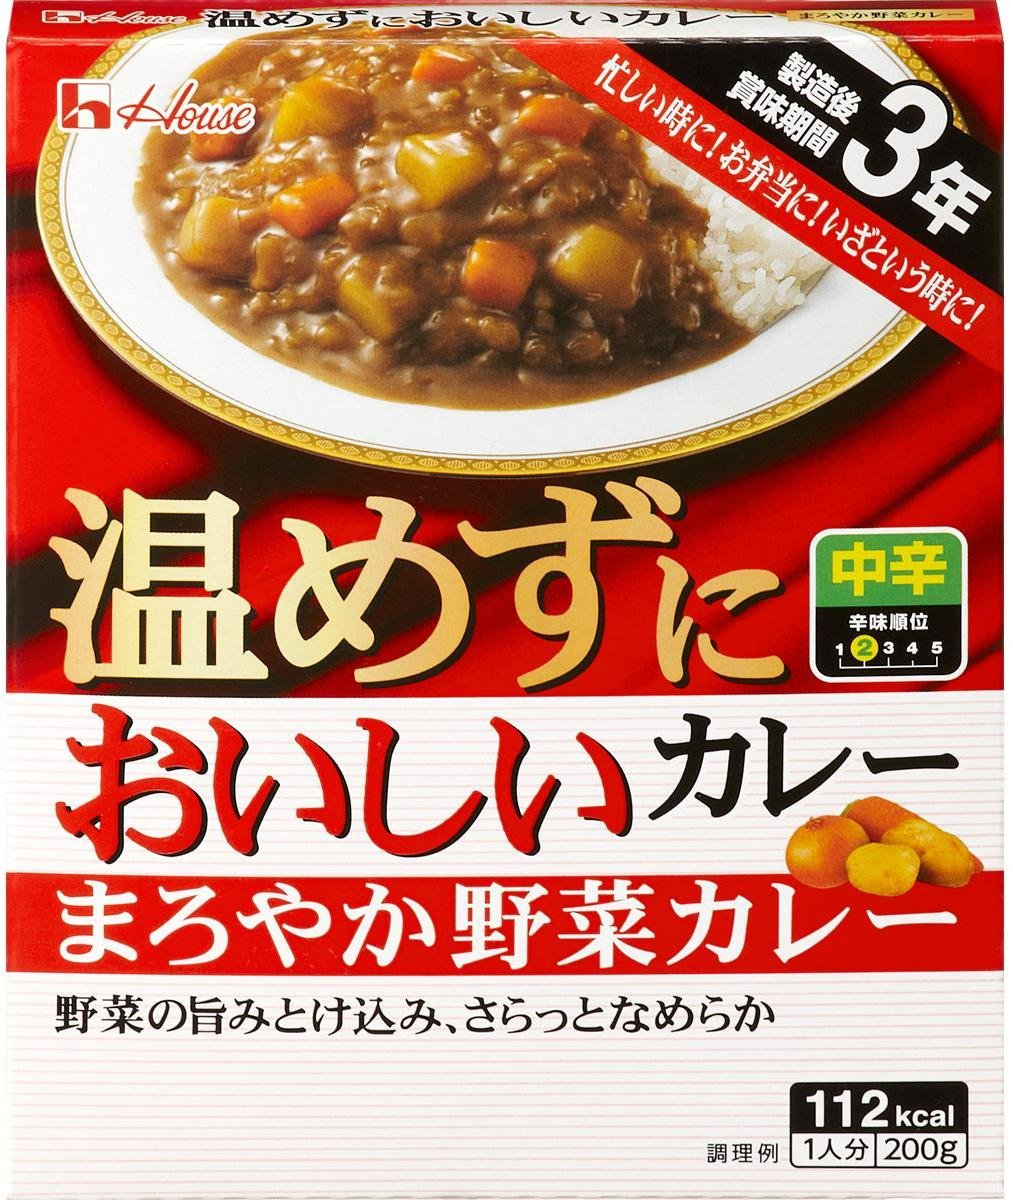 Delicious curry mild vegetable curry 200g ~ 10 atoms not warm house by House